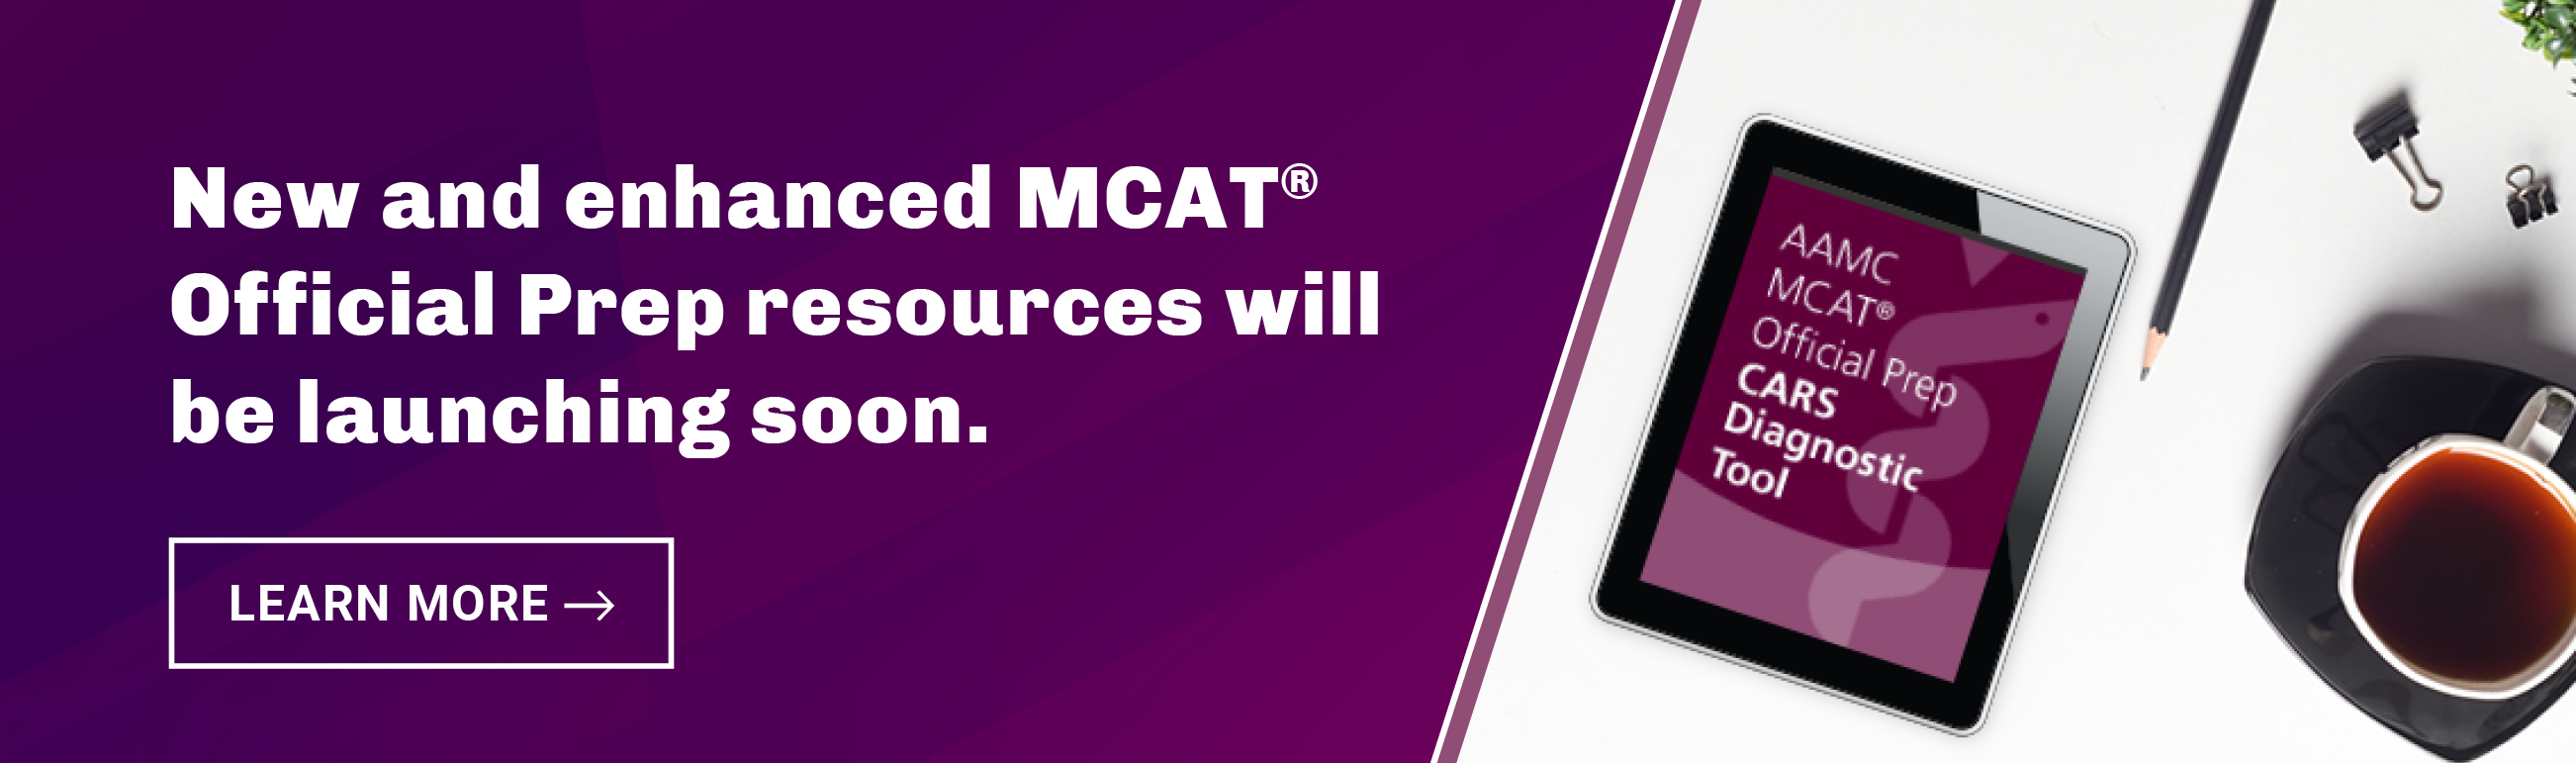 MCAT Official Prep Products Coming soon